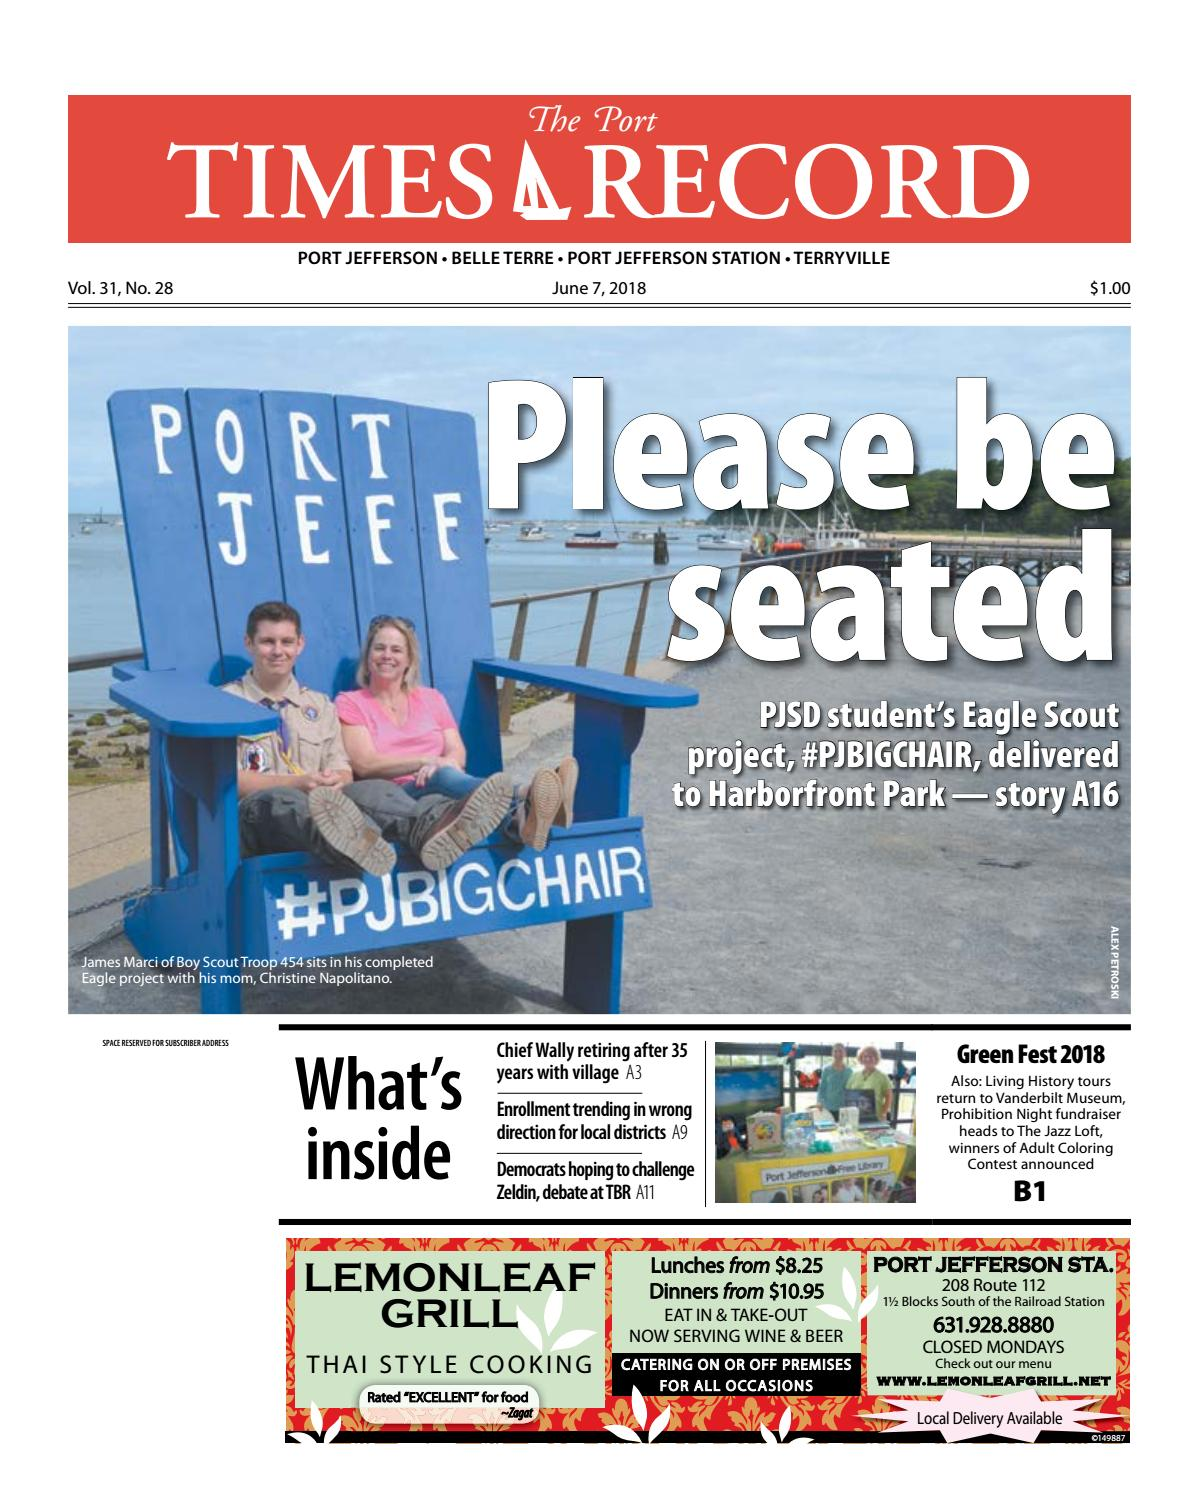 The Port Times Record - June 7, 2018 by TBR News Media - issuu